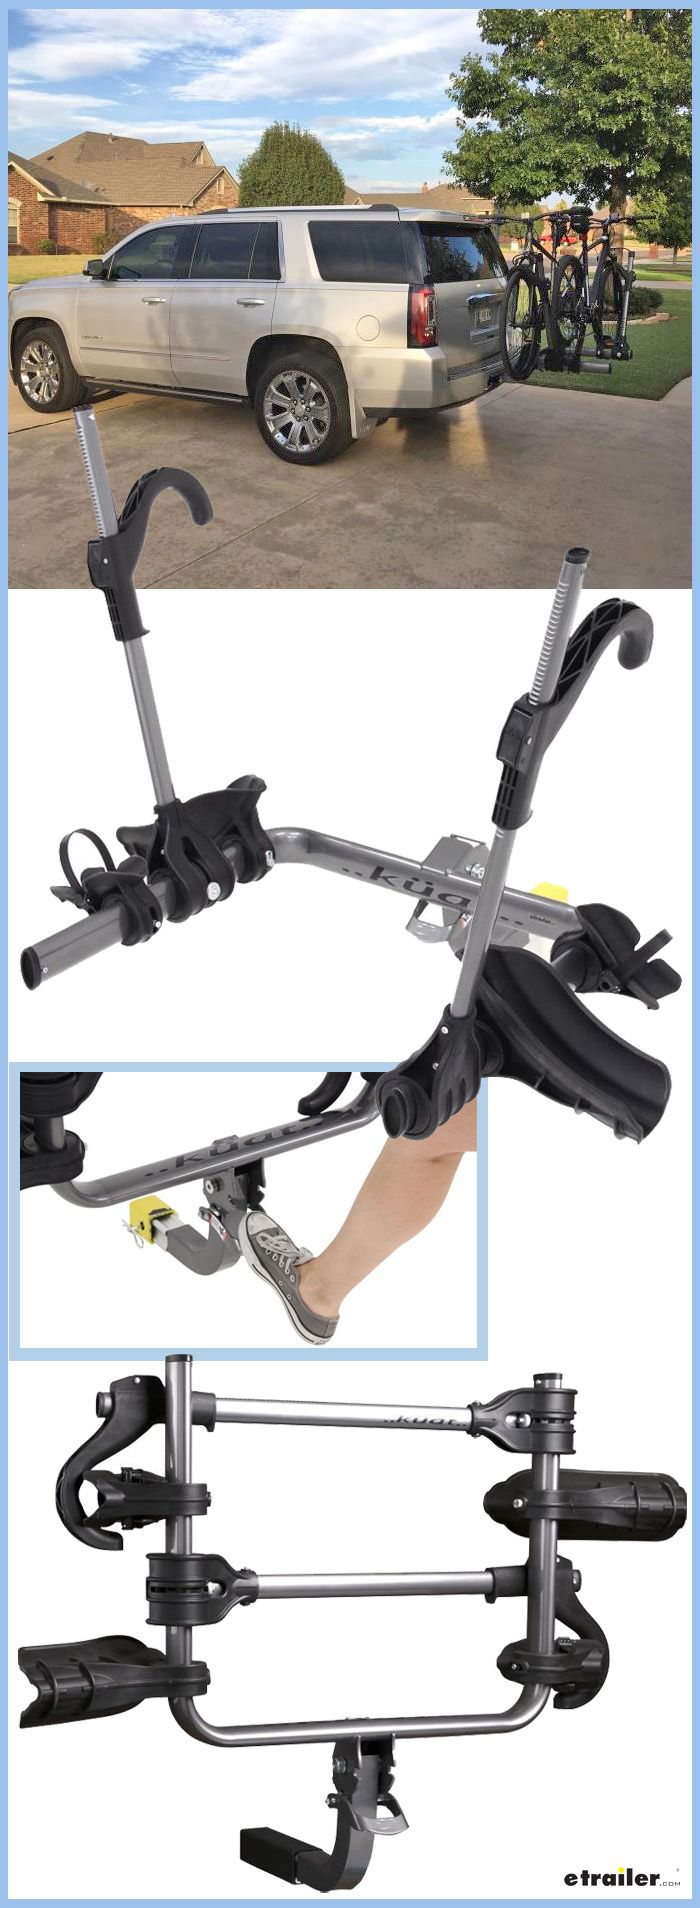 swing kuat essentially bike this only folks here reading to stop compatible away rack receivers with item pivot since magazine plugs hitches adapter is k gear any allows inch the at hitch can racks that an